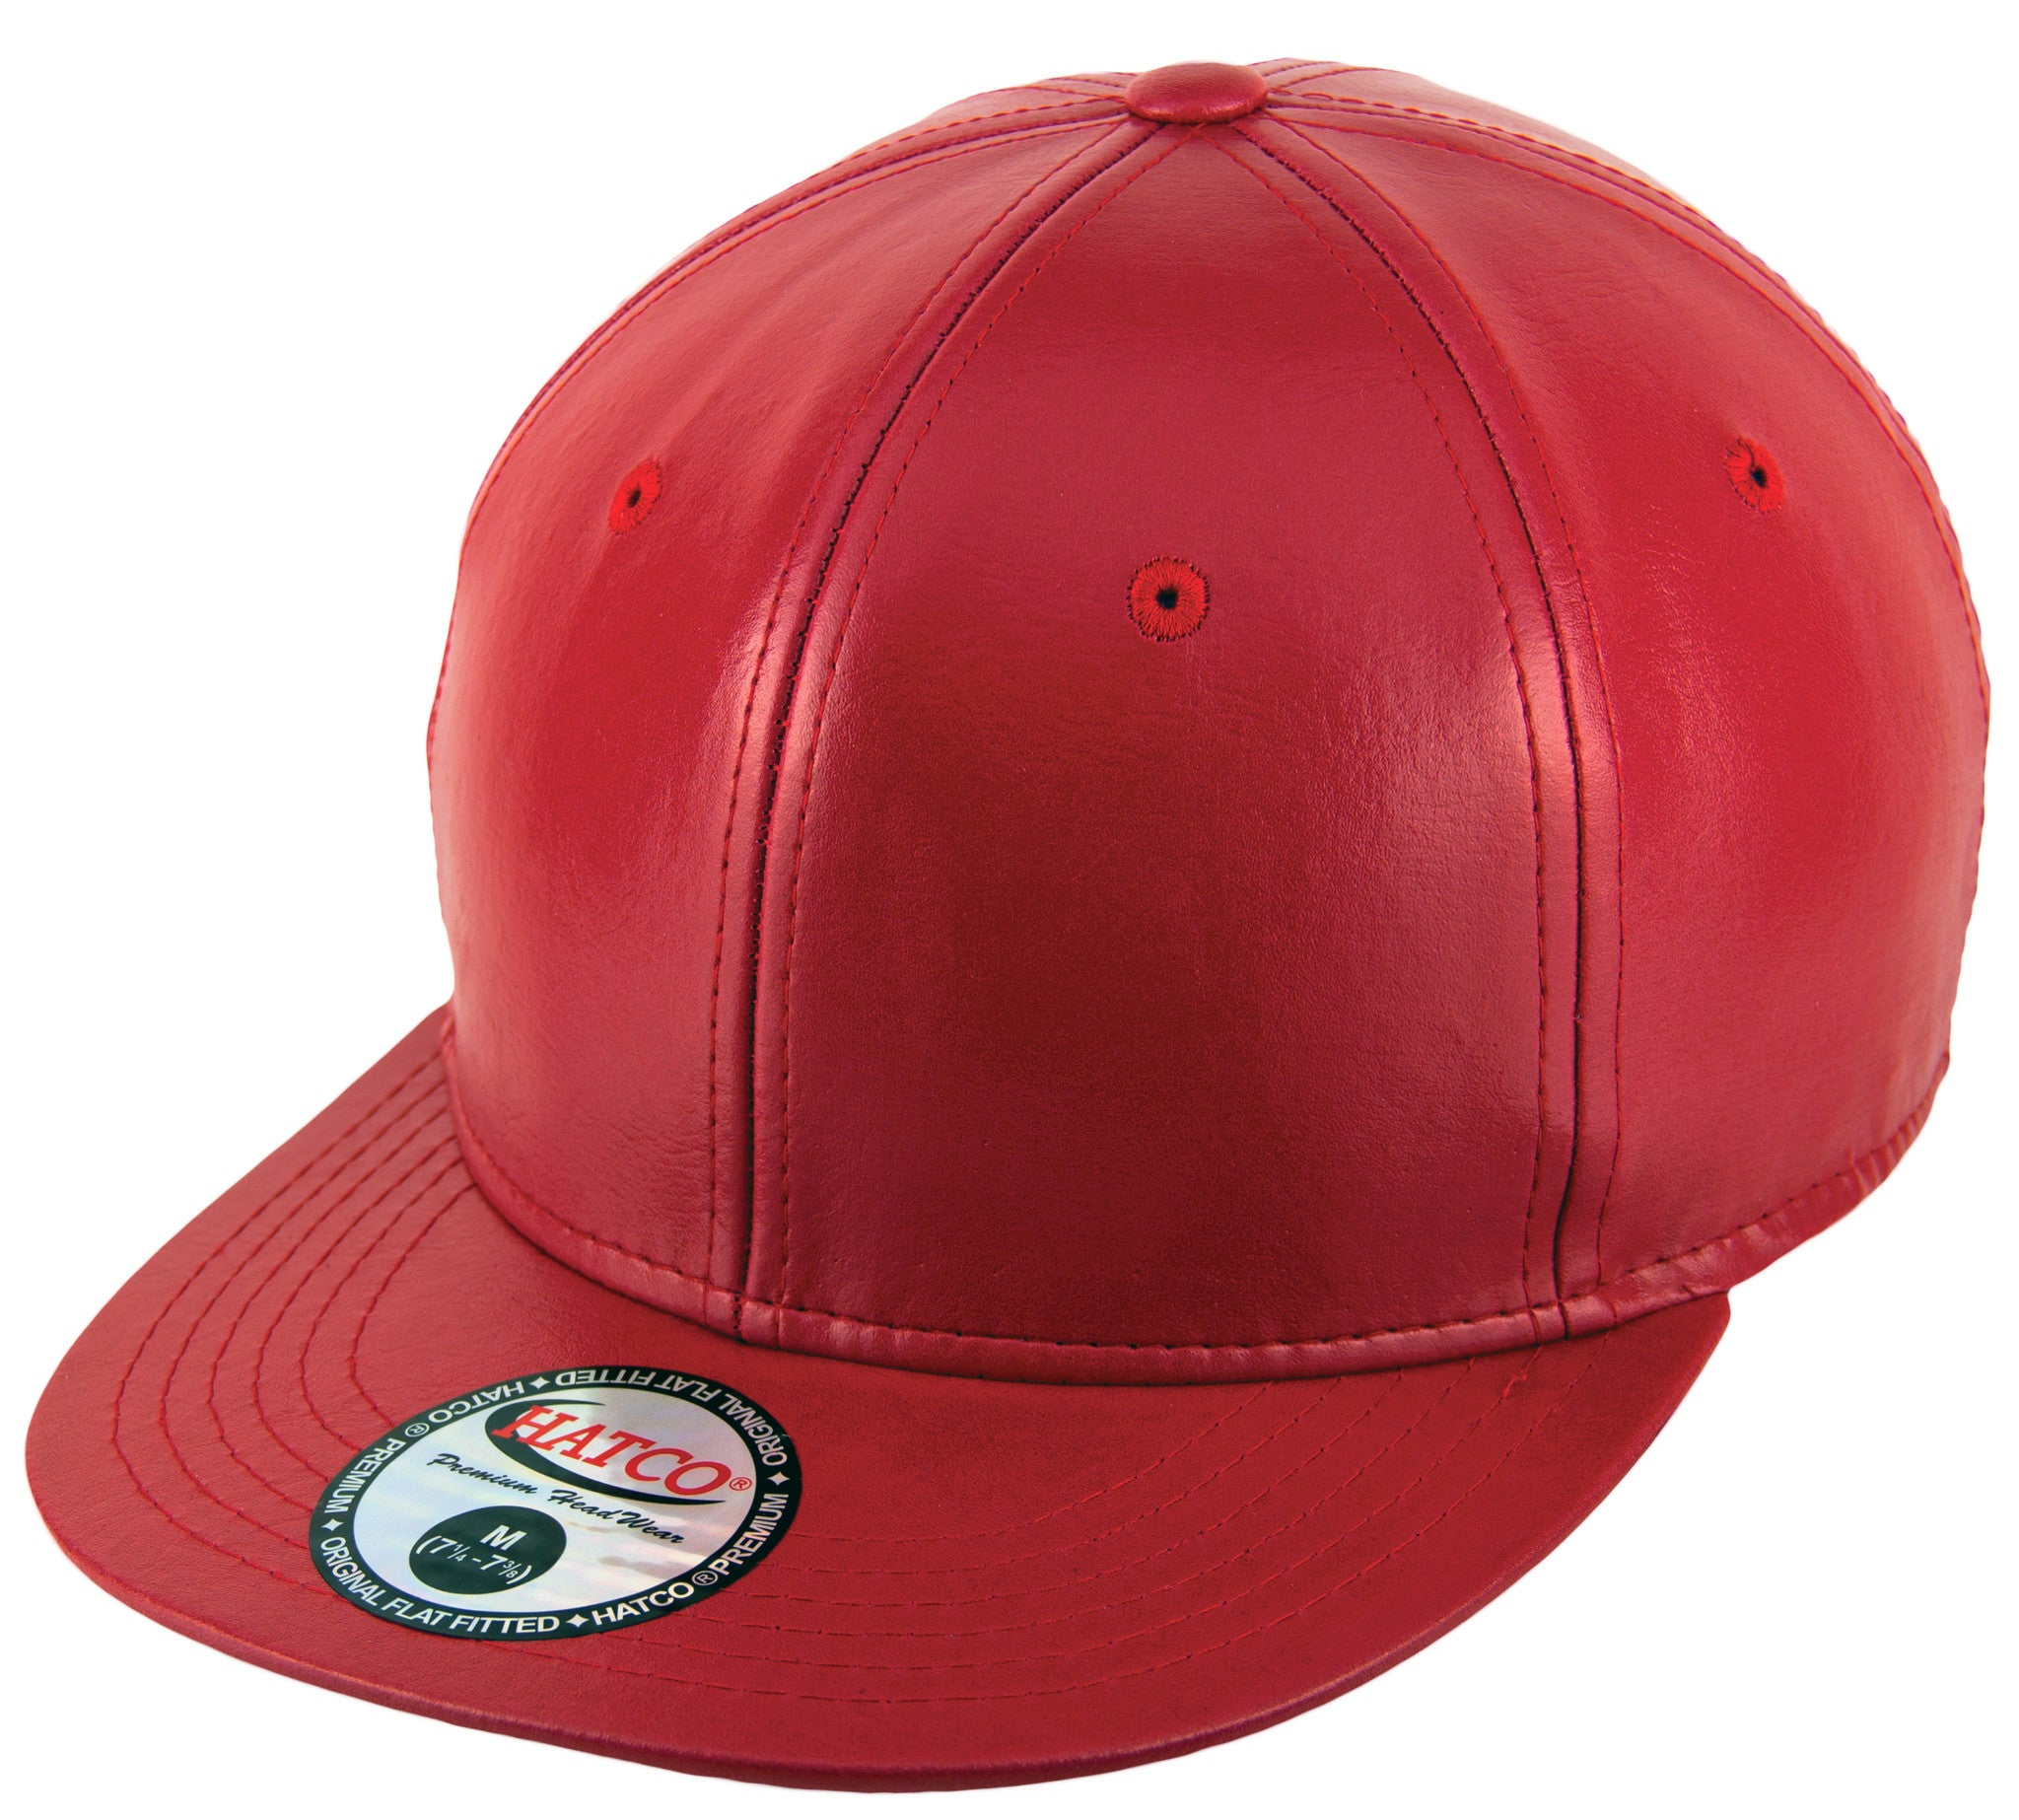 Blank PU Leather Fitted Caps - HATCOcaps.com - ... 7a48d13a73d